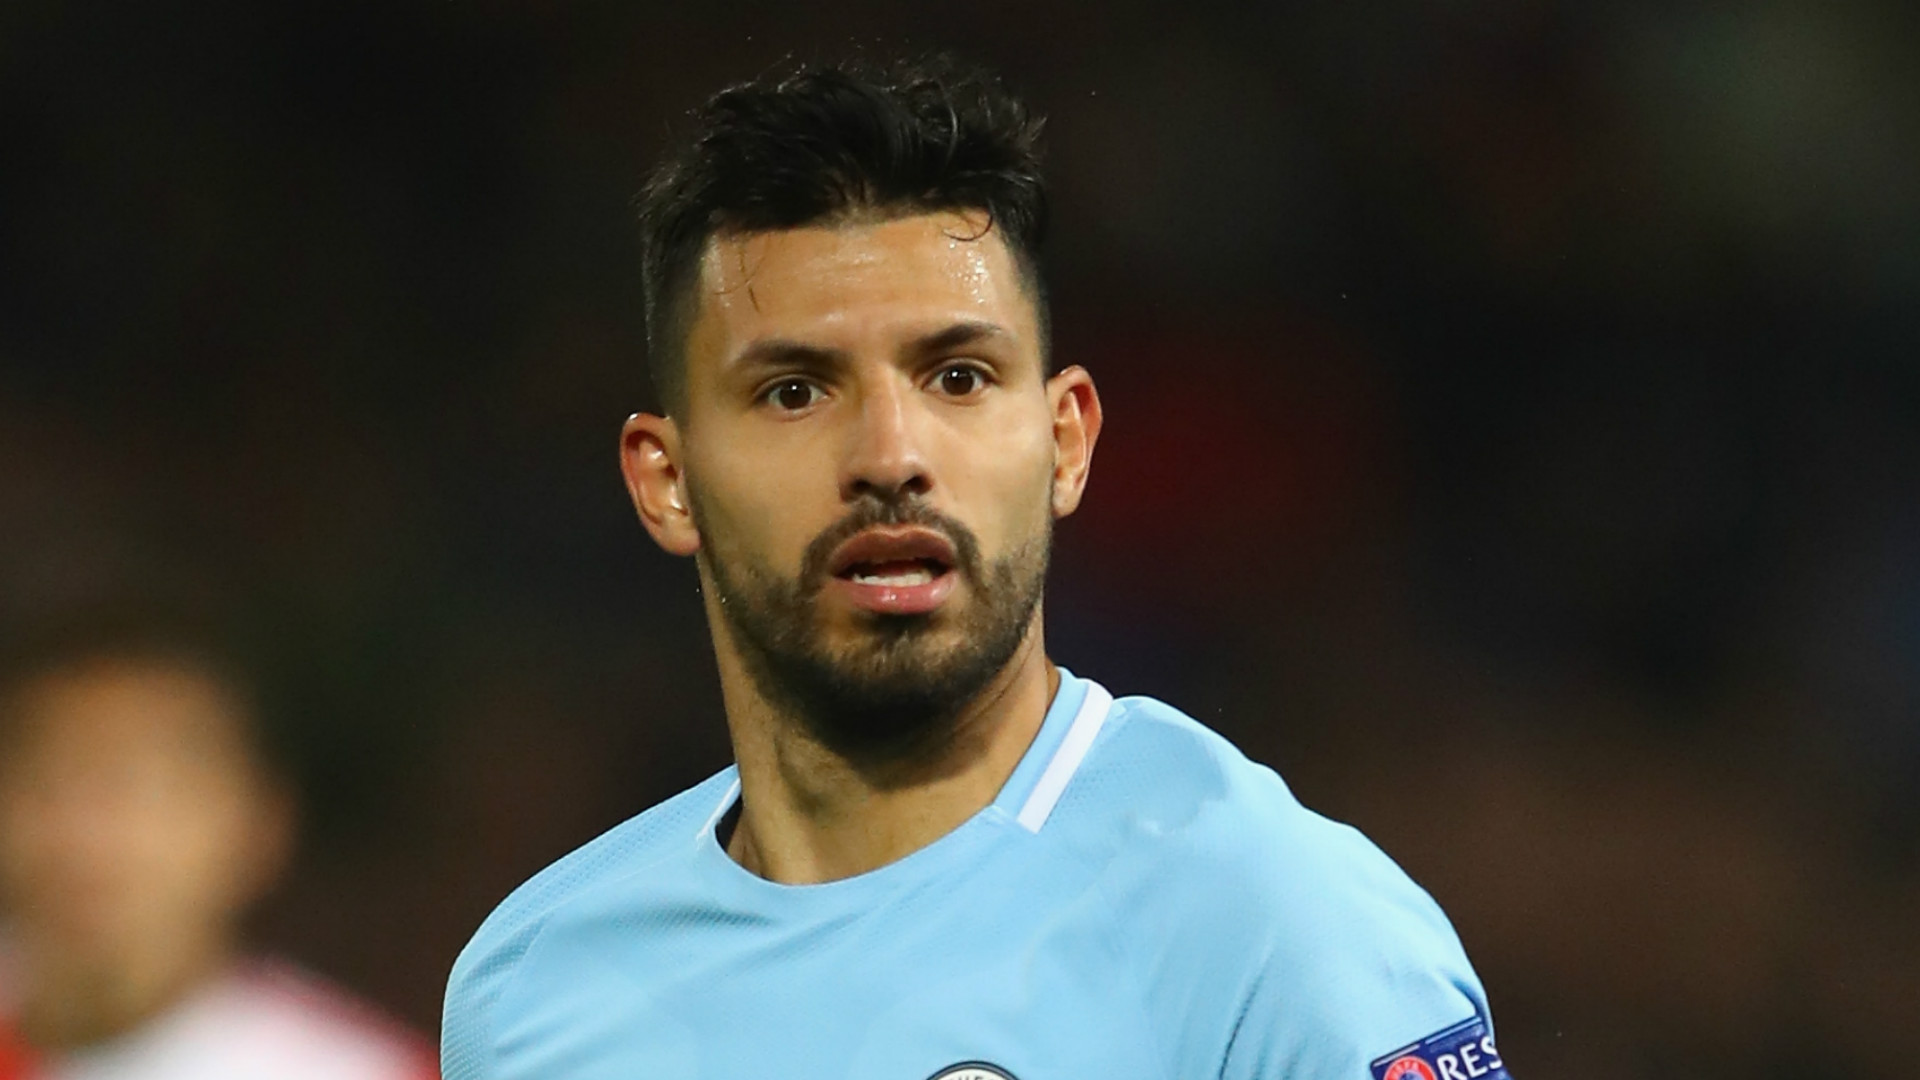 Showcase - Man City striker Aguero hurt in auto  crash